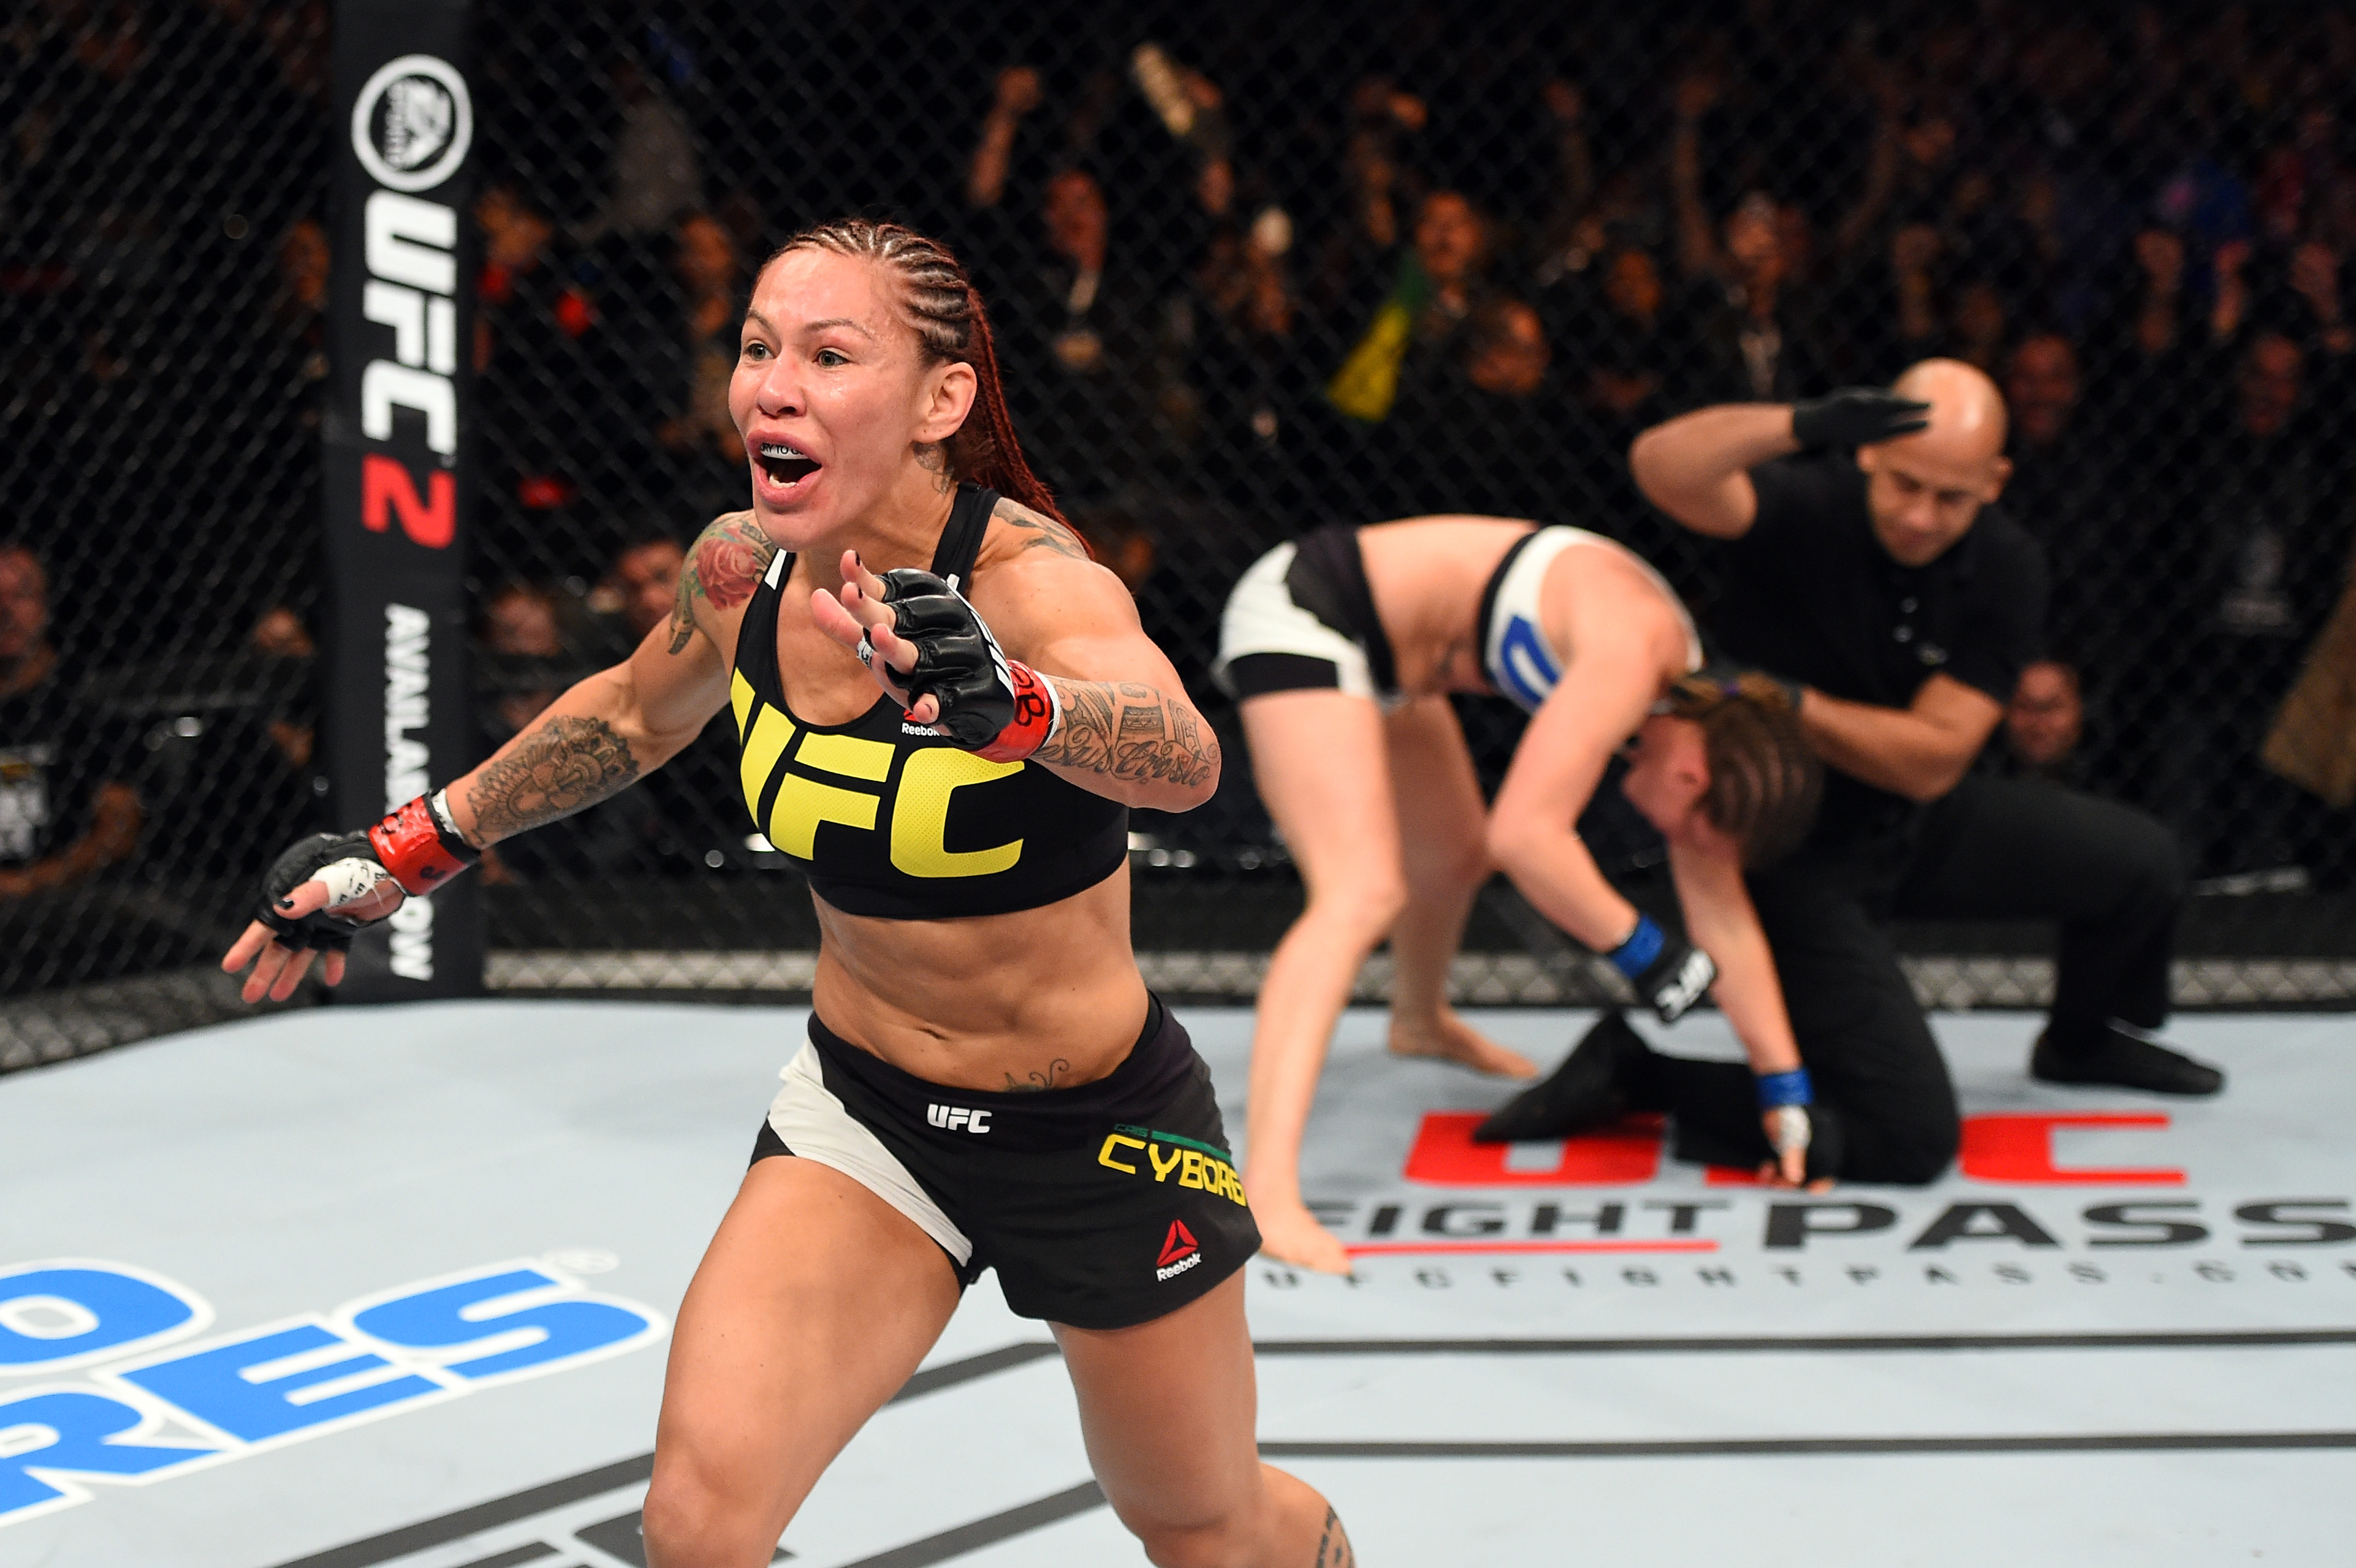 Cris Cyborg will fight for featherweight title at UFC 214 after Germaine de Randamie stripped